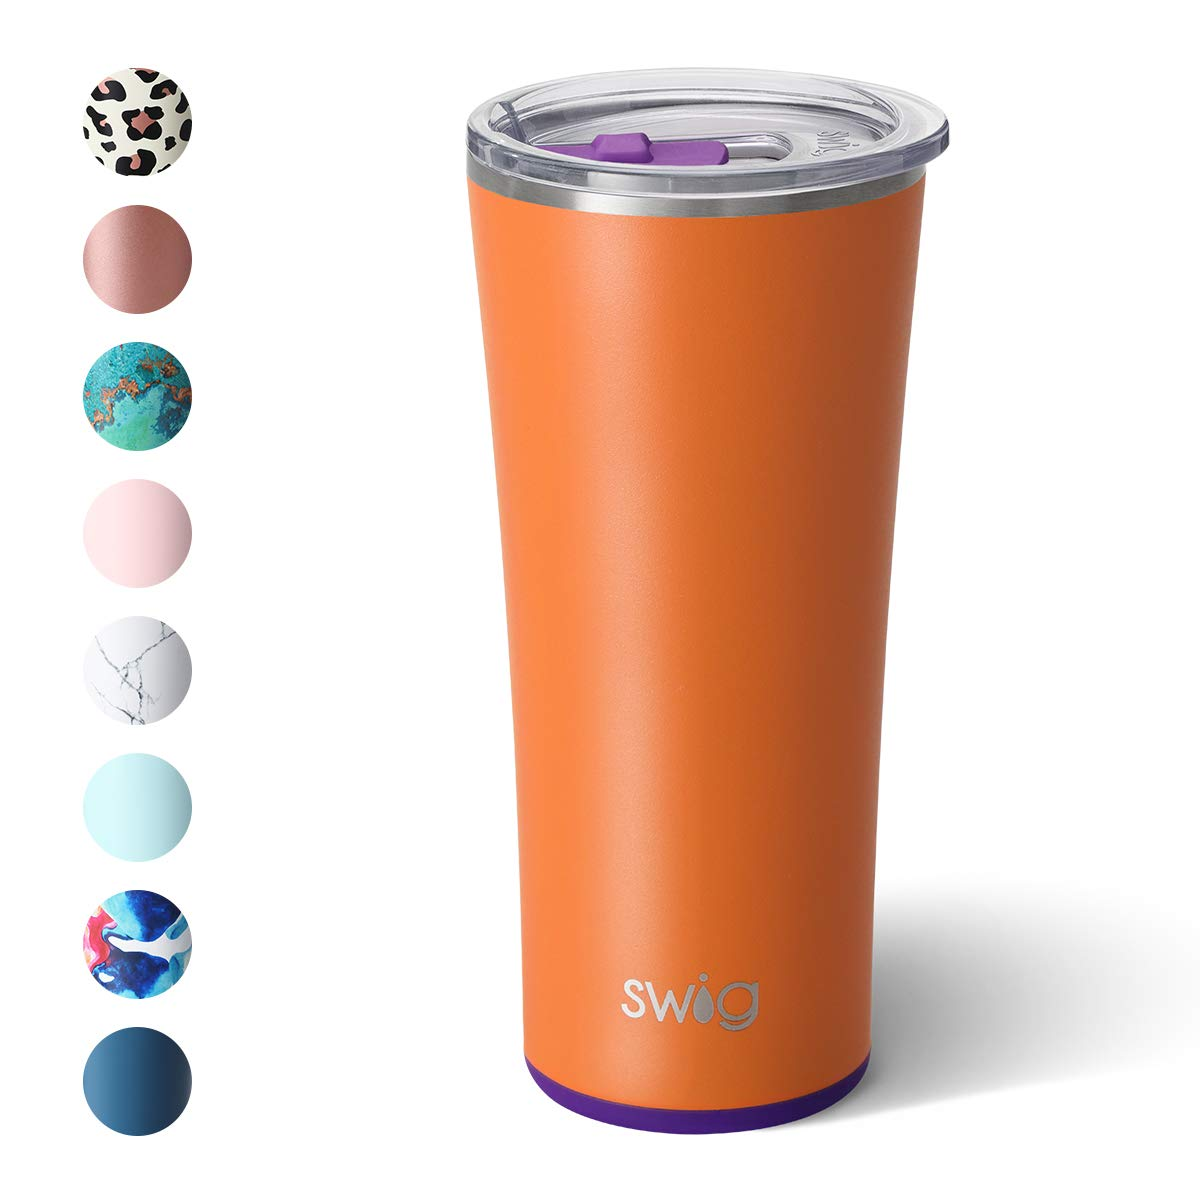 Swig Life 22oz Triple Insulated Stainless Steel Skinny Tumbler with Lid, Dishwasher Safe, Double Wall, Vacuum Sealed Travel Coffee Tumbler in Matte Orange/Purple Print (Multiple Patterns Available)